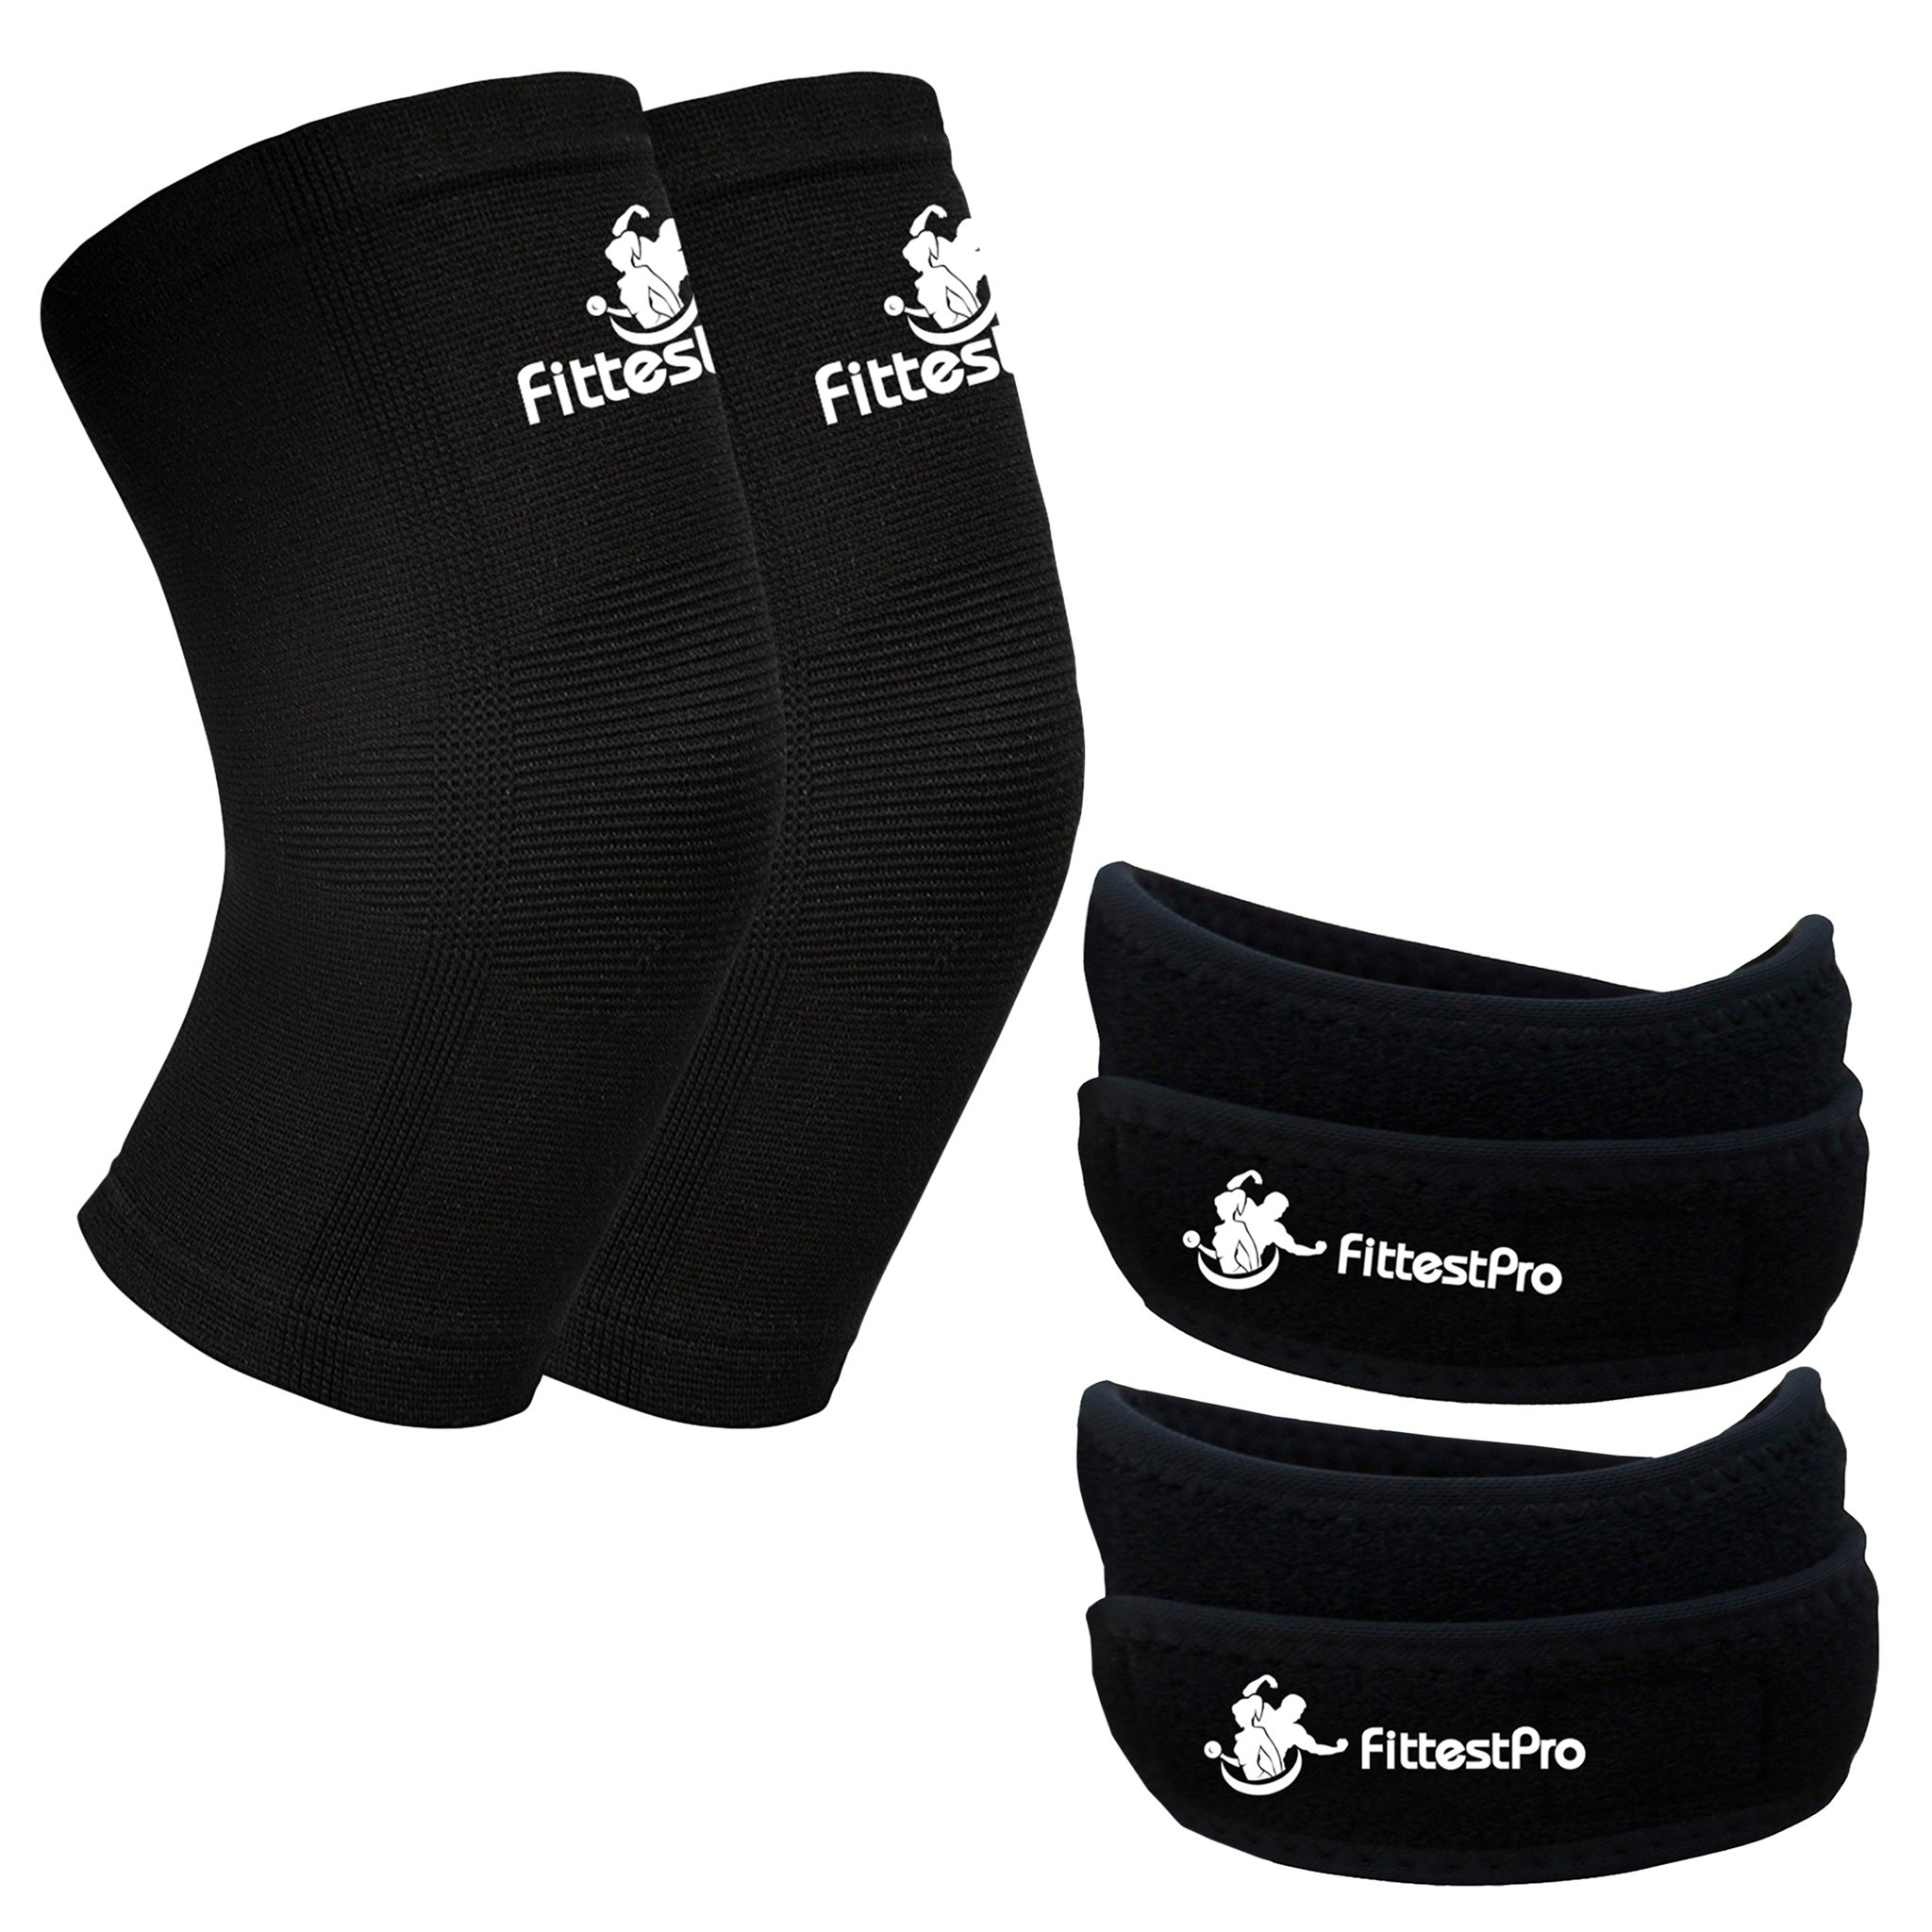 Knee Sleeve Package (Pack of 4) - Knee Compression Sleeve (1 Pair) & FREE Knee Braces (1 Pair) - Patella Knee Support Straps Sleeves - Knee Arthritis Brace & Pain Relief Strap